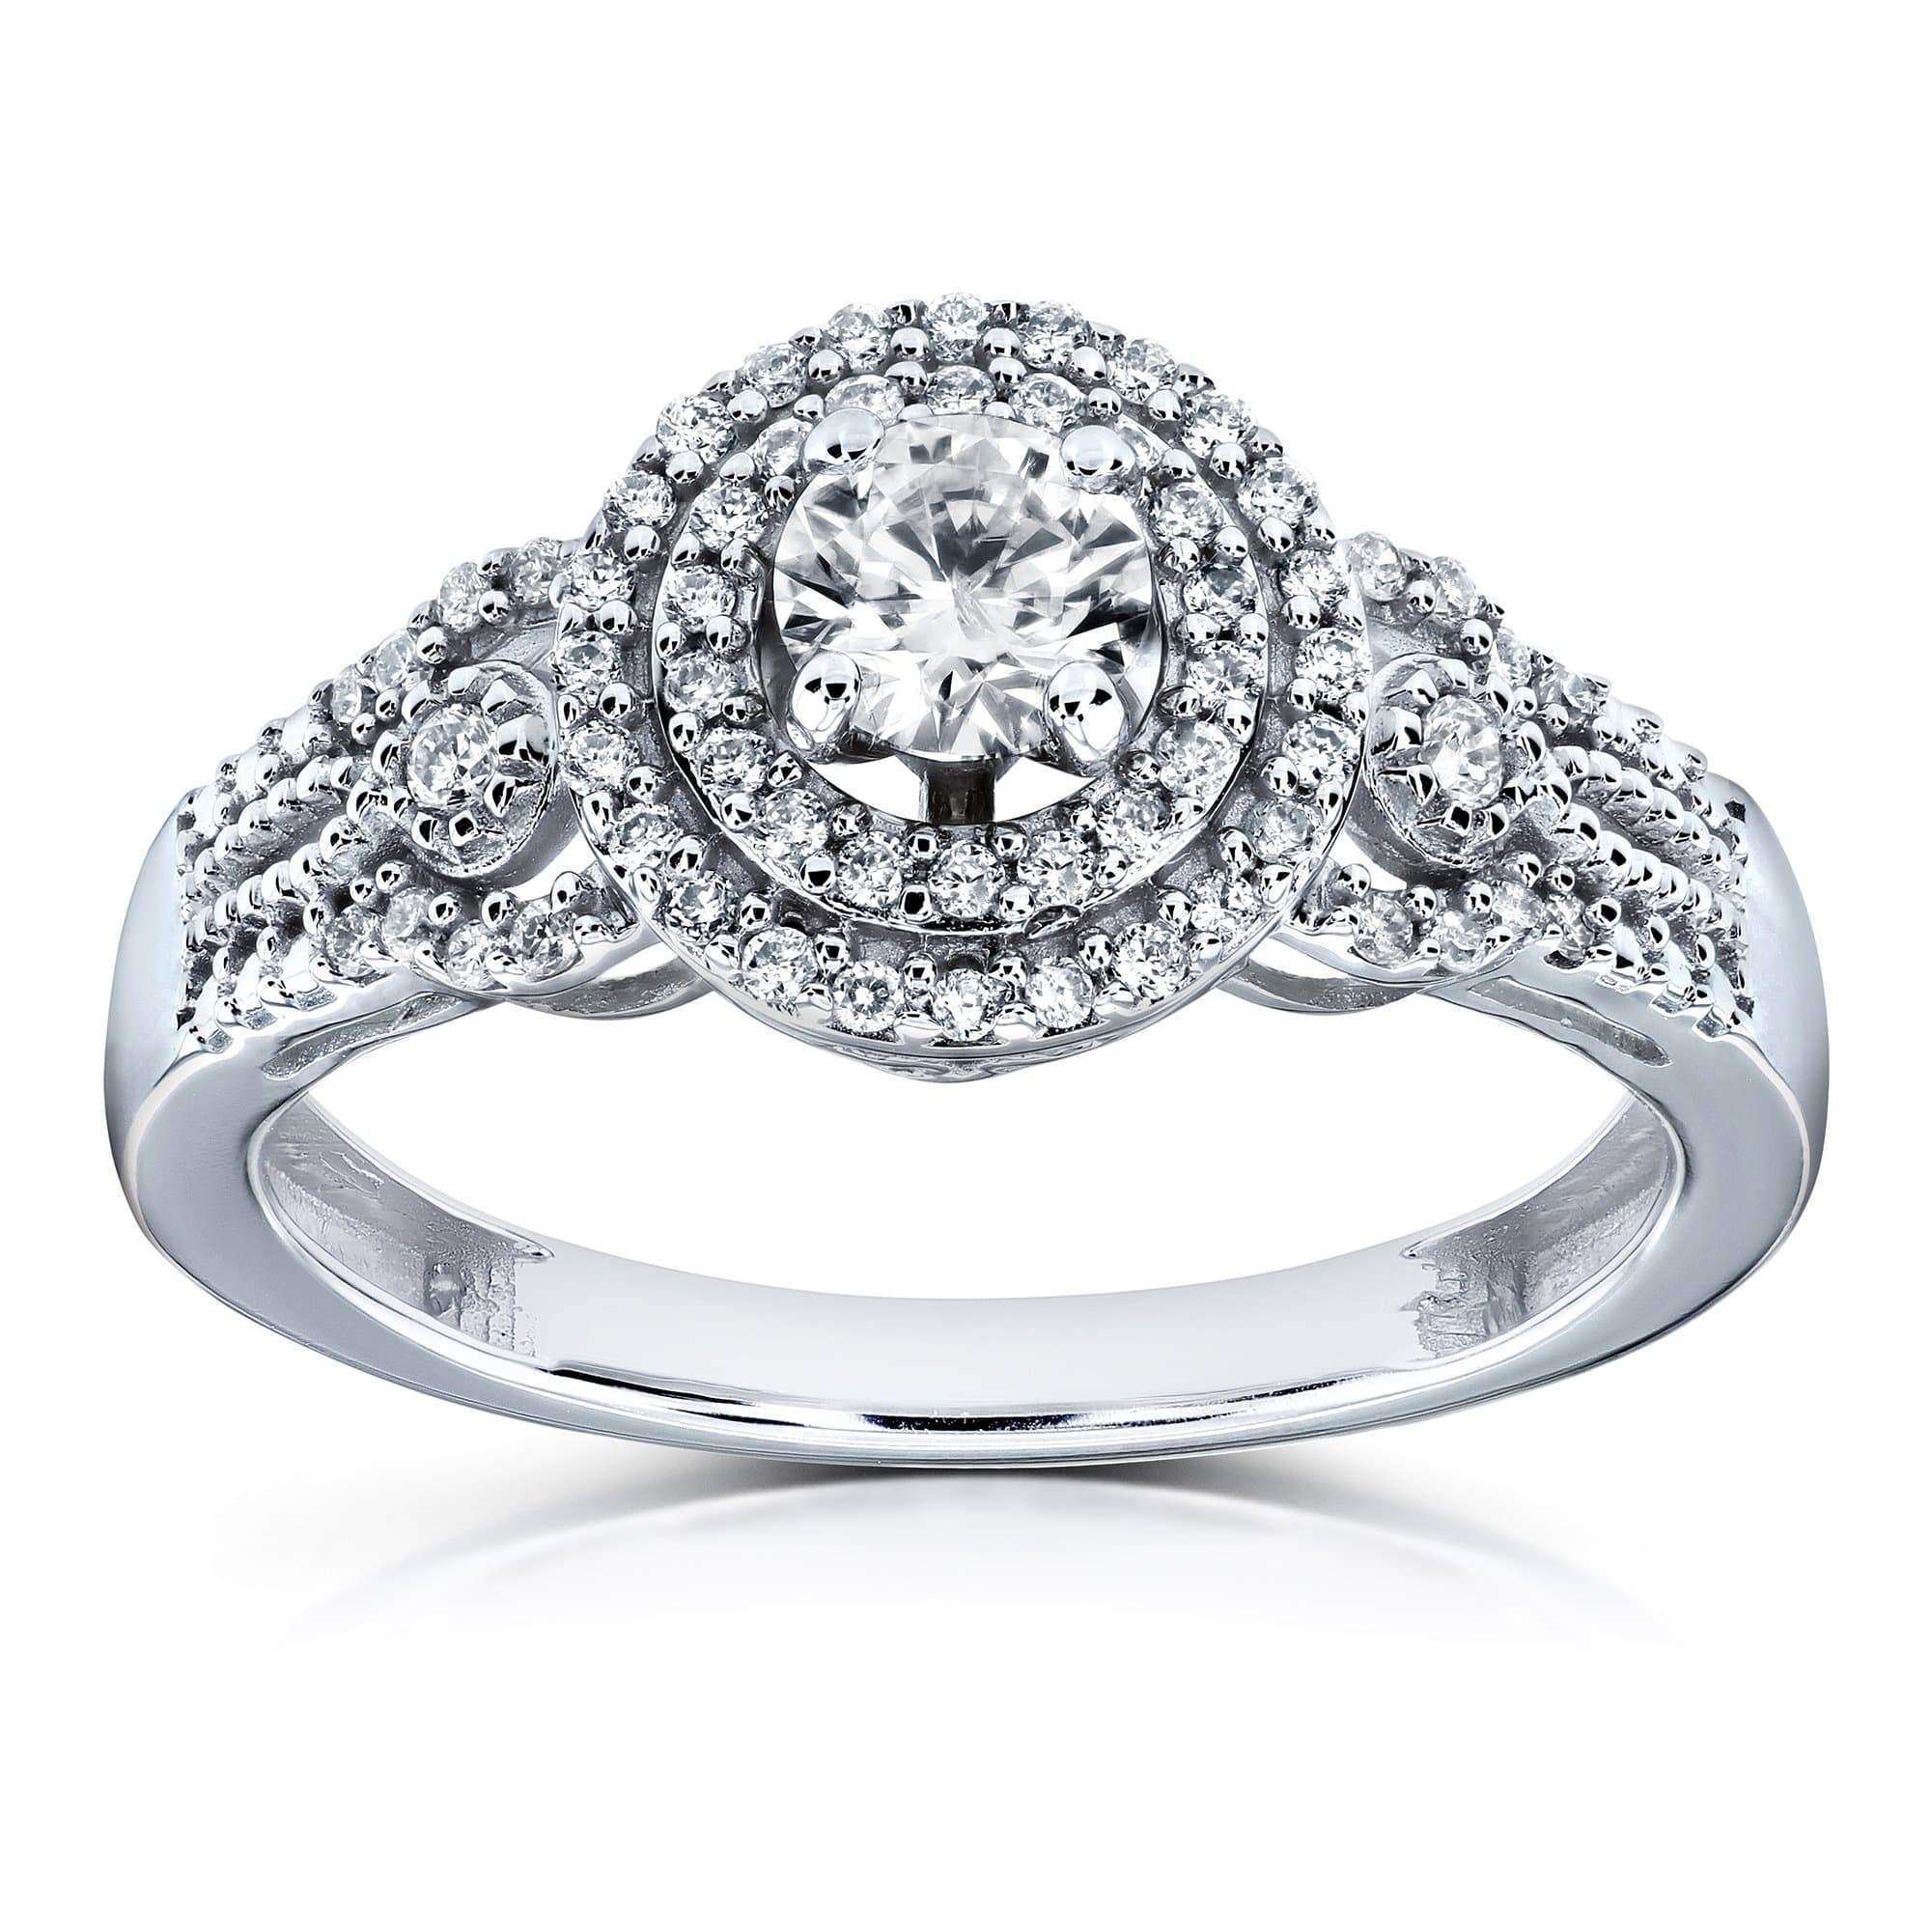 Best Double Halo Composite 1/2 Carat TW Diamond Fancy Engagement Ring in 14k White Gold - 4